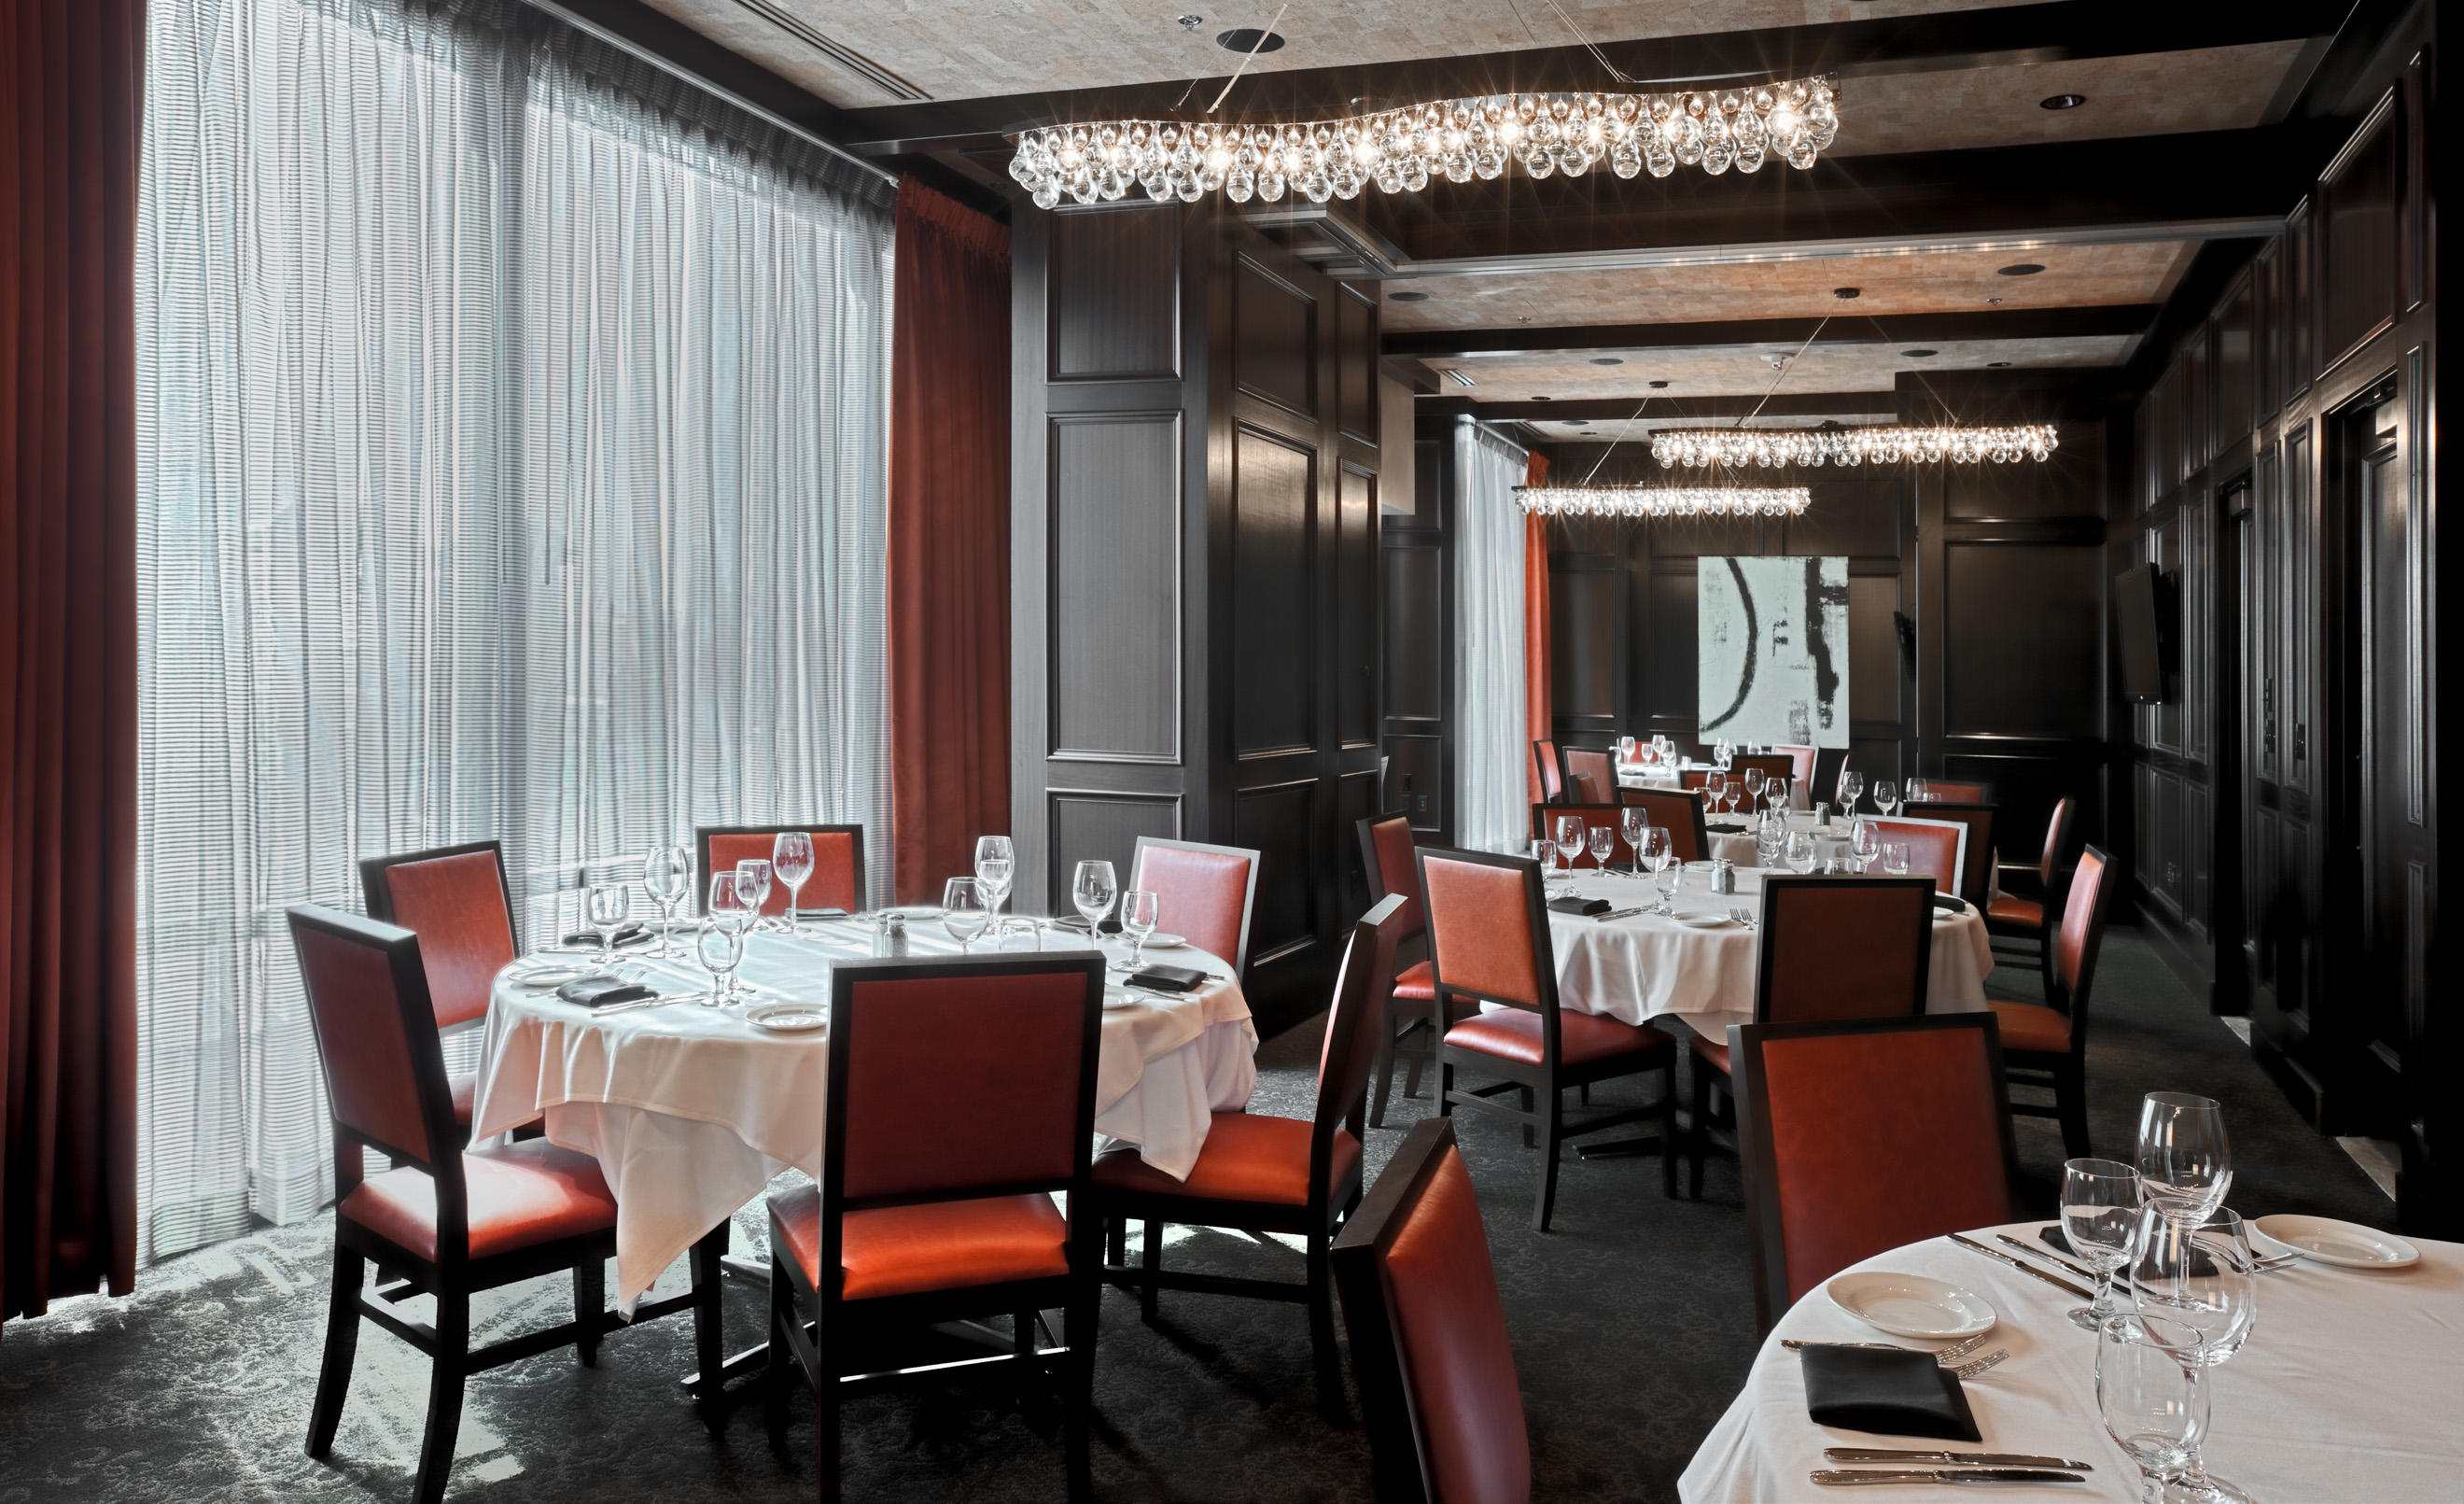 Del Frisco's Double Eagle Steak House Boston Doulos Room private dining room